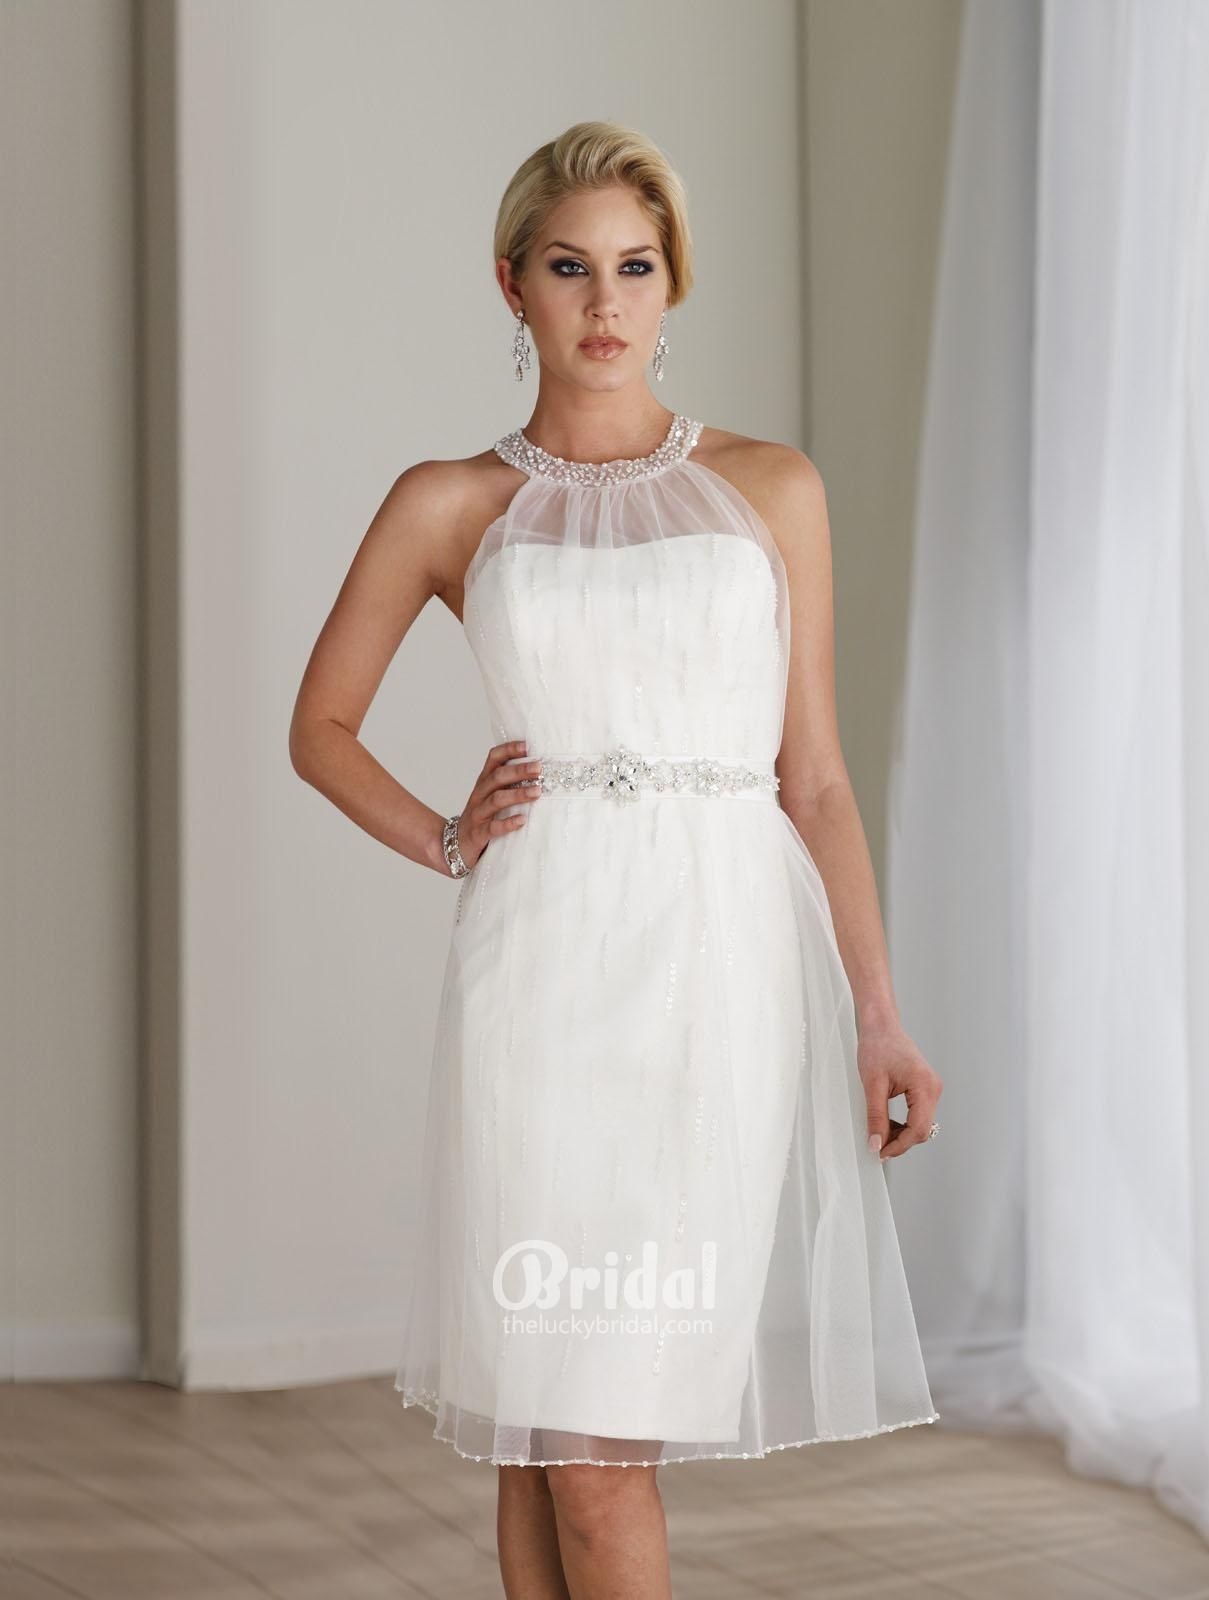 Fresh Non Formal Wedding Dresses Check More At Http://svesty.com/non Formal  Wedding Dresses/